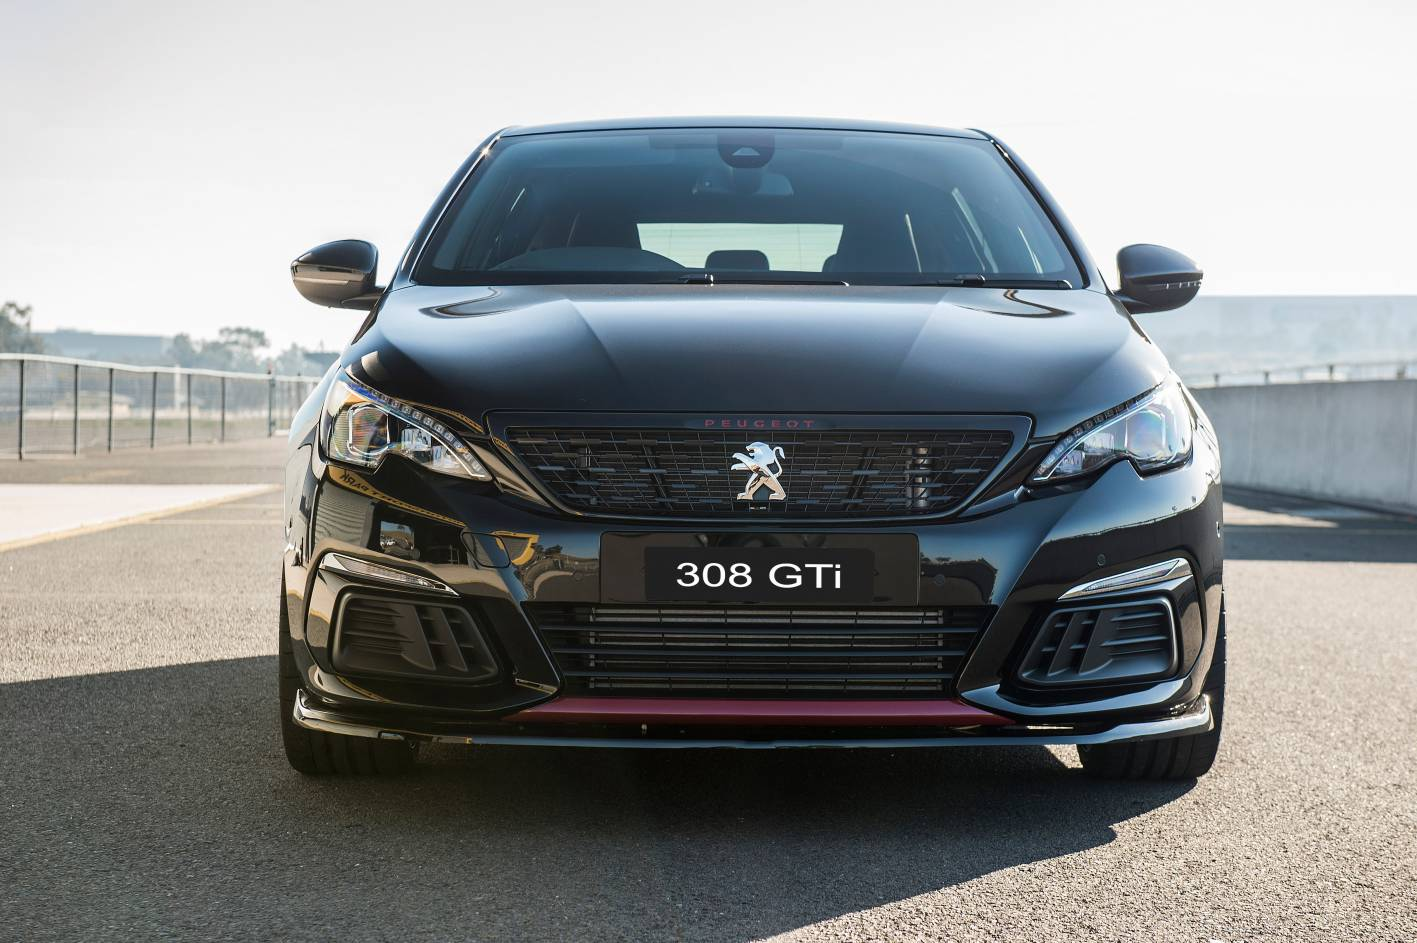 2019 peugeot 308 gti sport special edition announced for. Black Bedroom Furniture Sets. Home Design Ideas